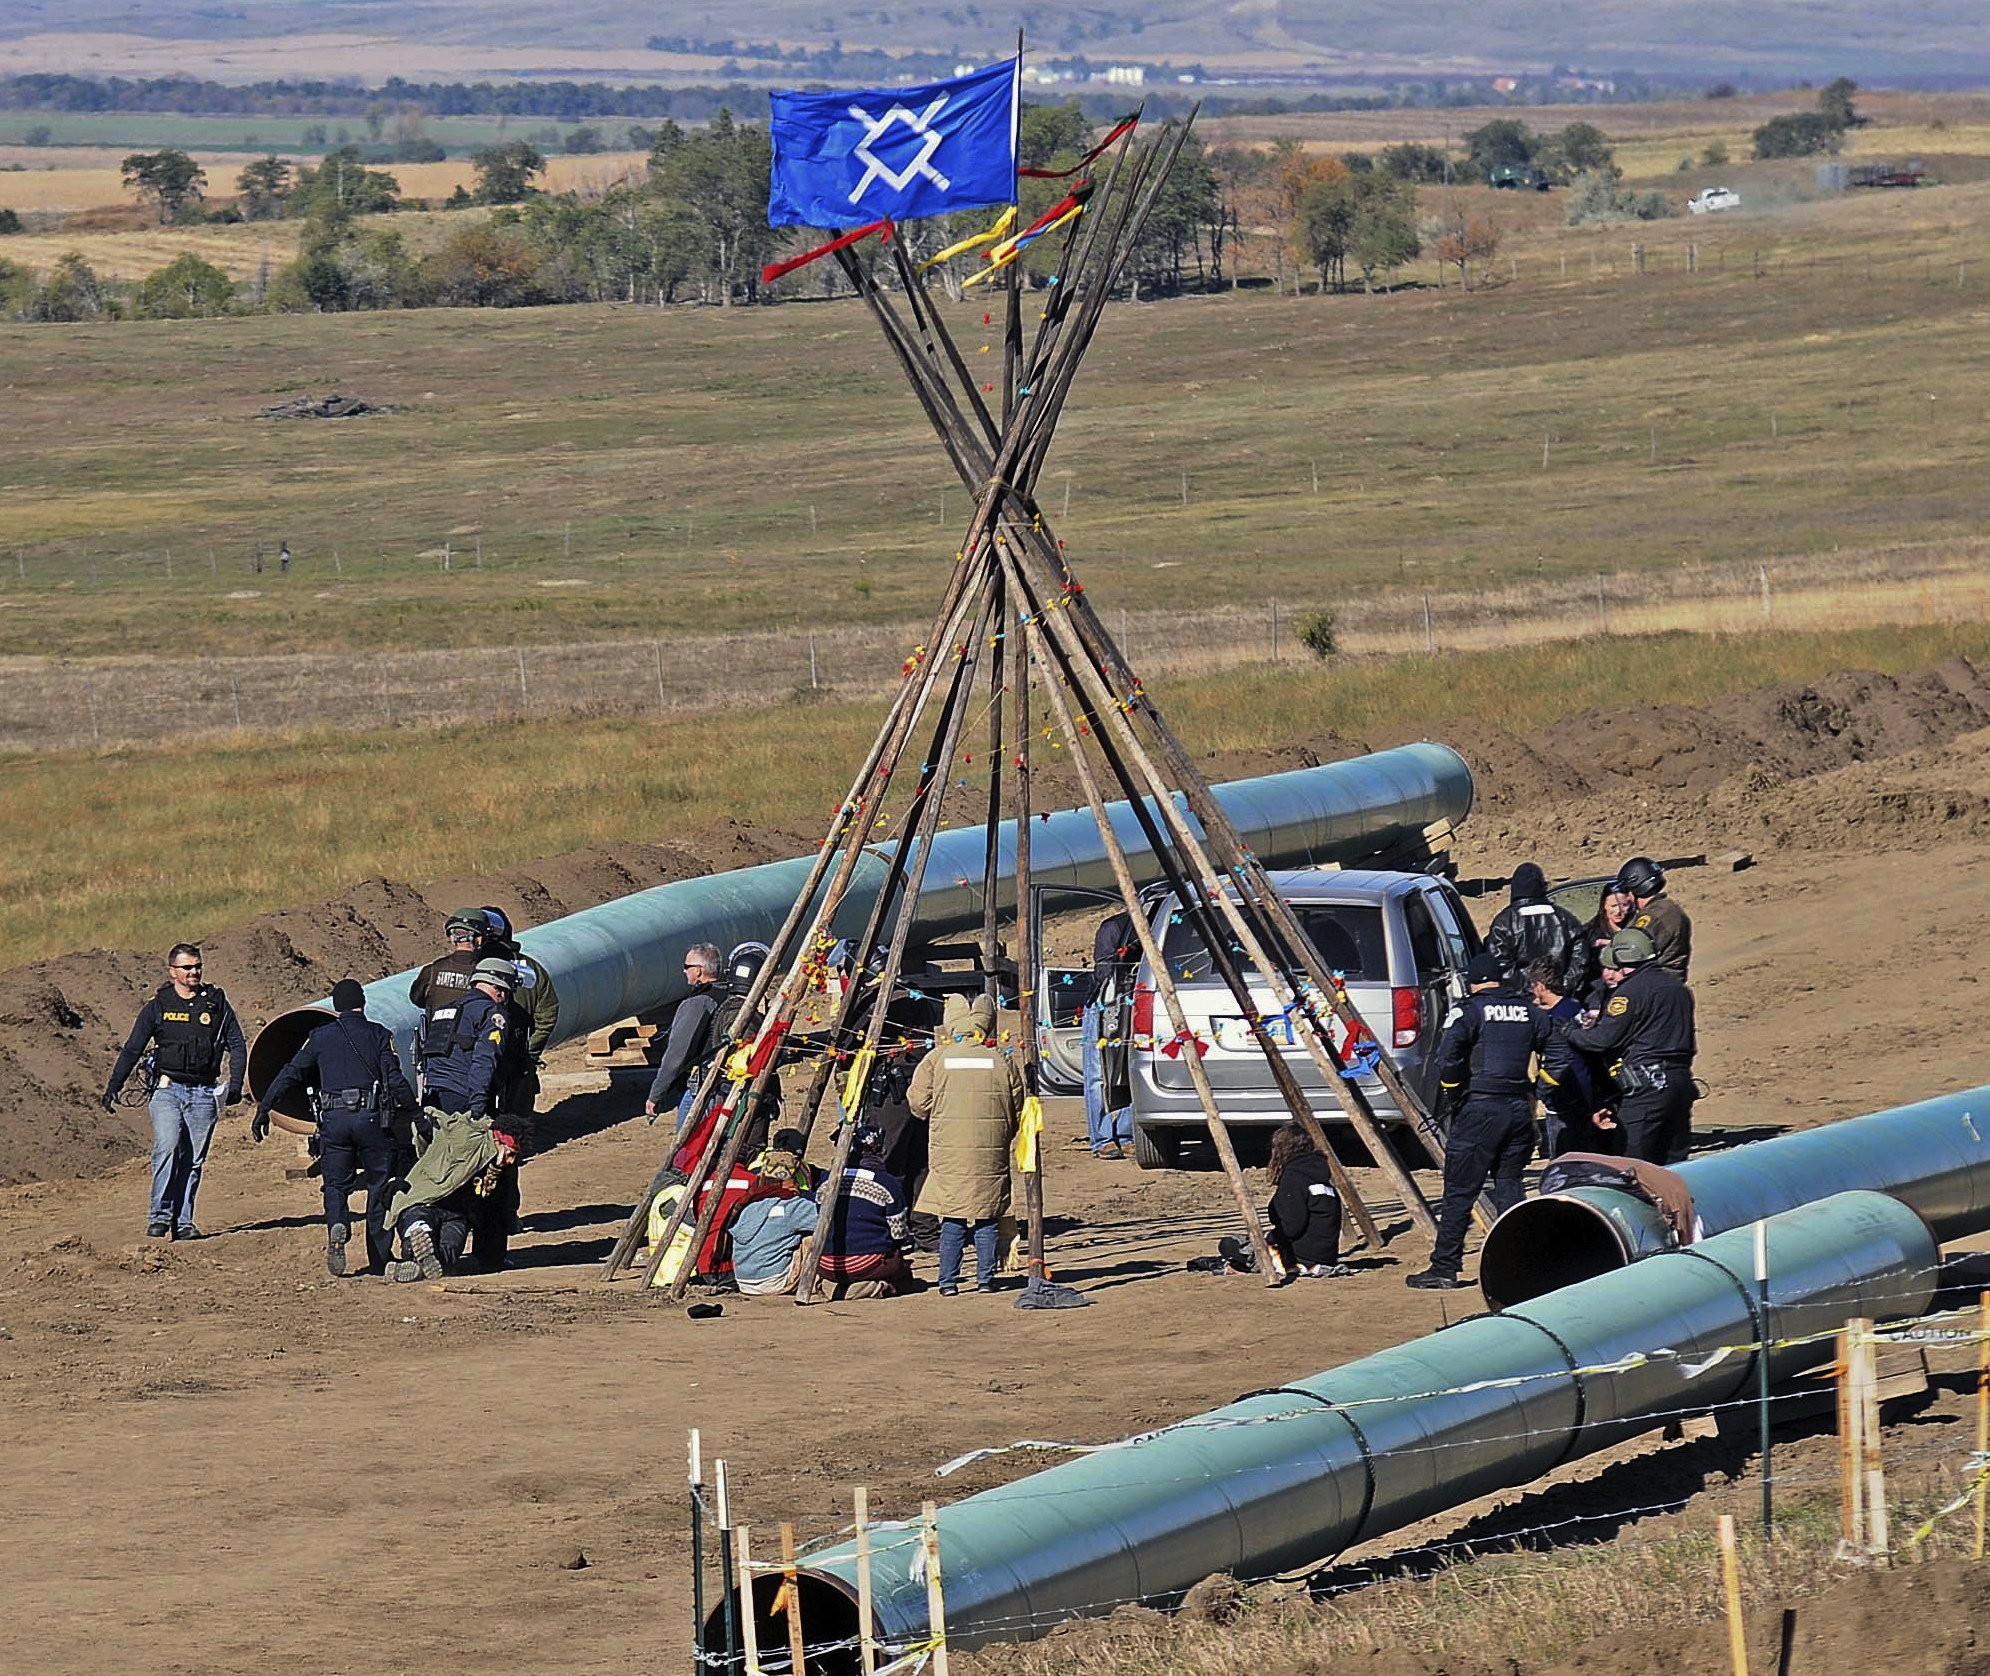 Law enforcement officers (L) drag a person from a protest against the Dakota Access Pipeline, near the town of St. Anthony in rural Morton County, N.D., on Oct. 10, 2016. (Tom Stromme/The Bismarck Tribune via AP)